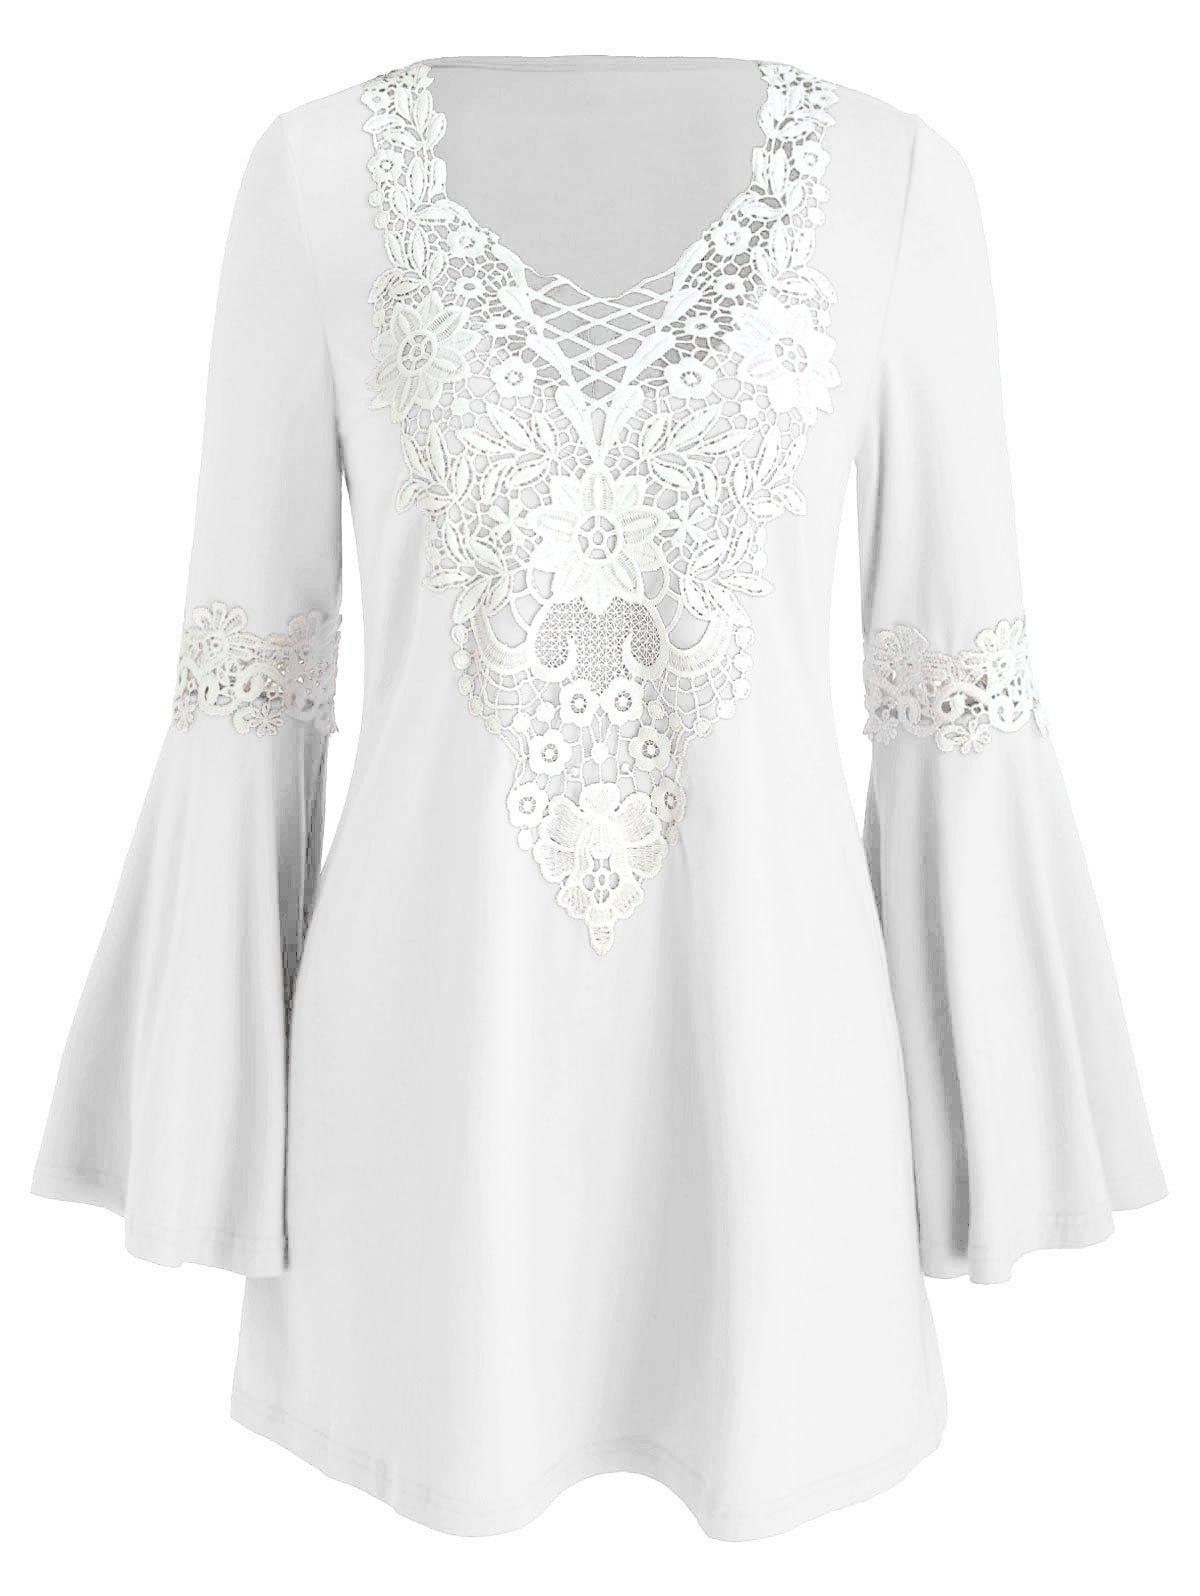 Crochet Panel Flare Sleeve Tunic Dress - WHITE S